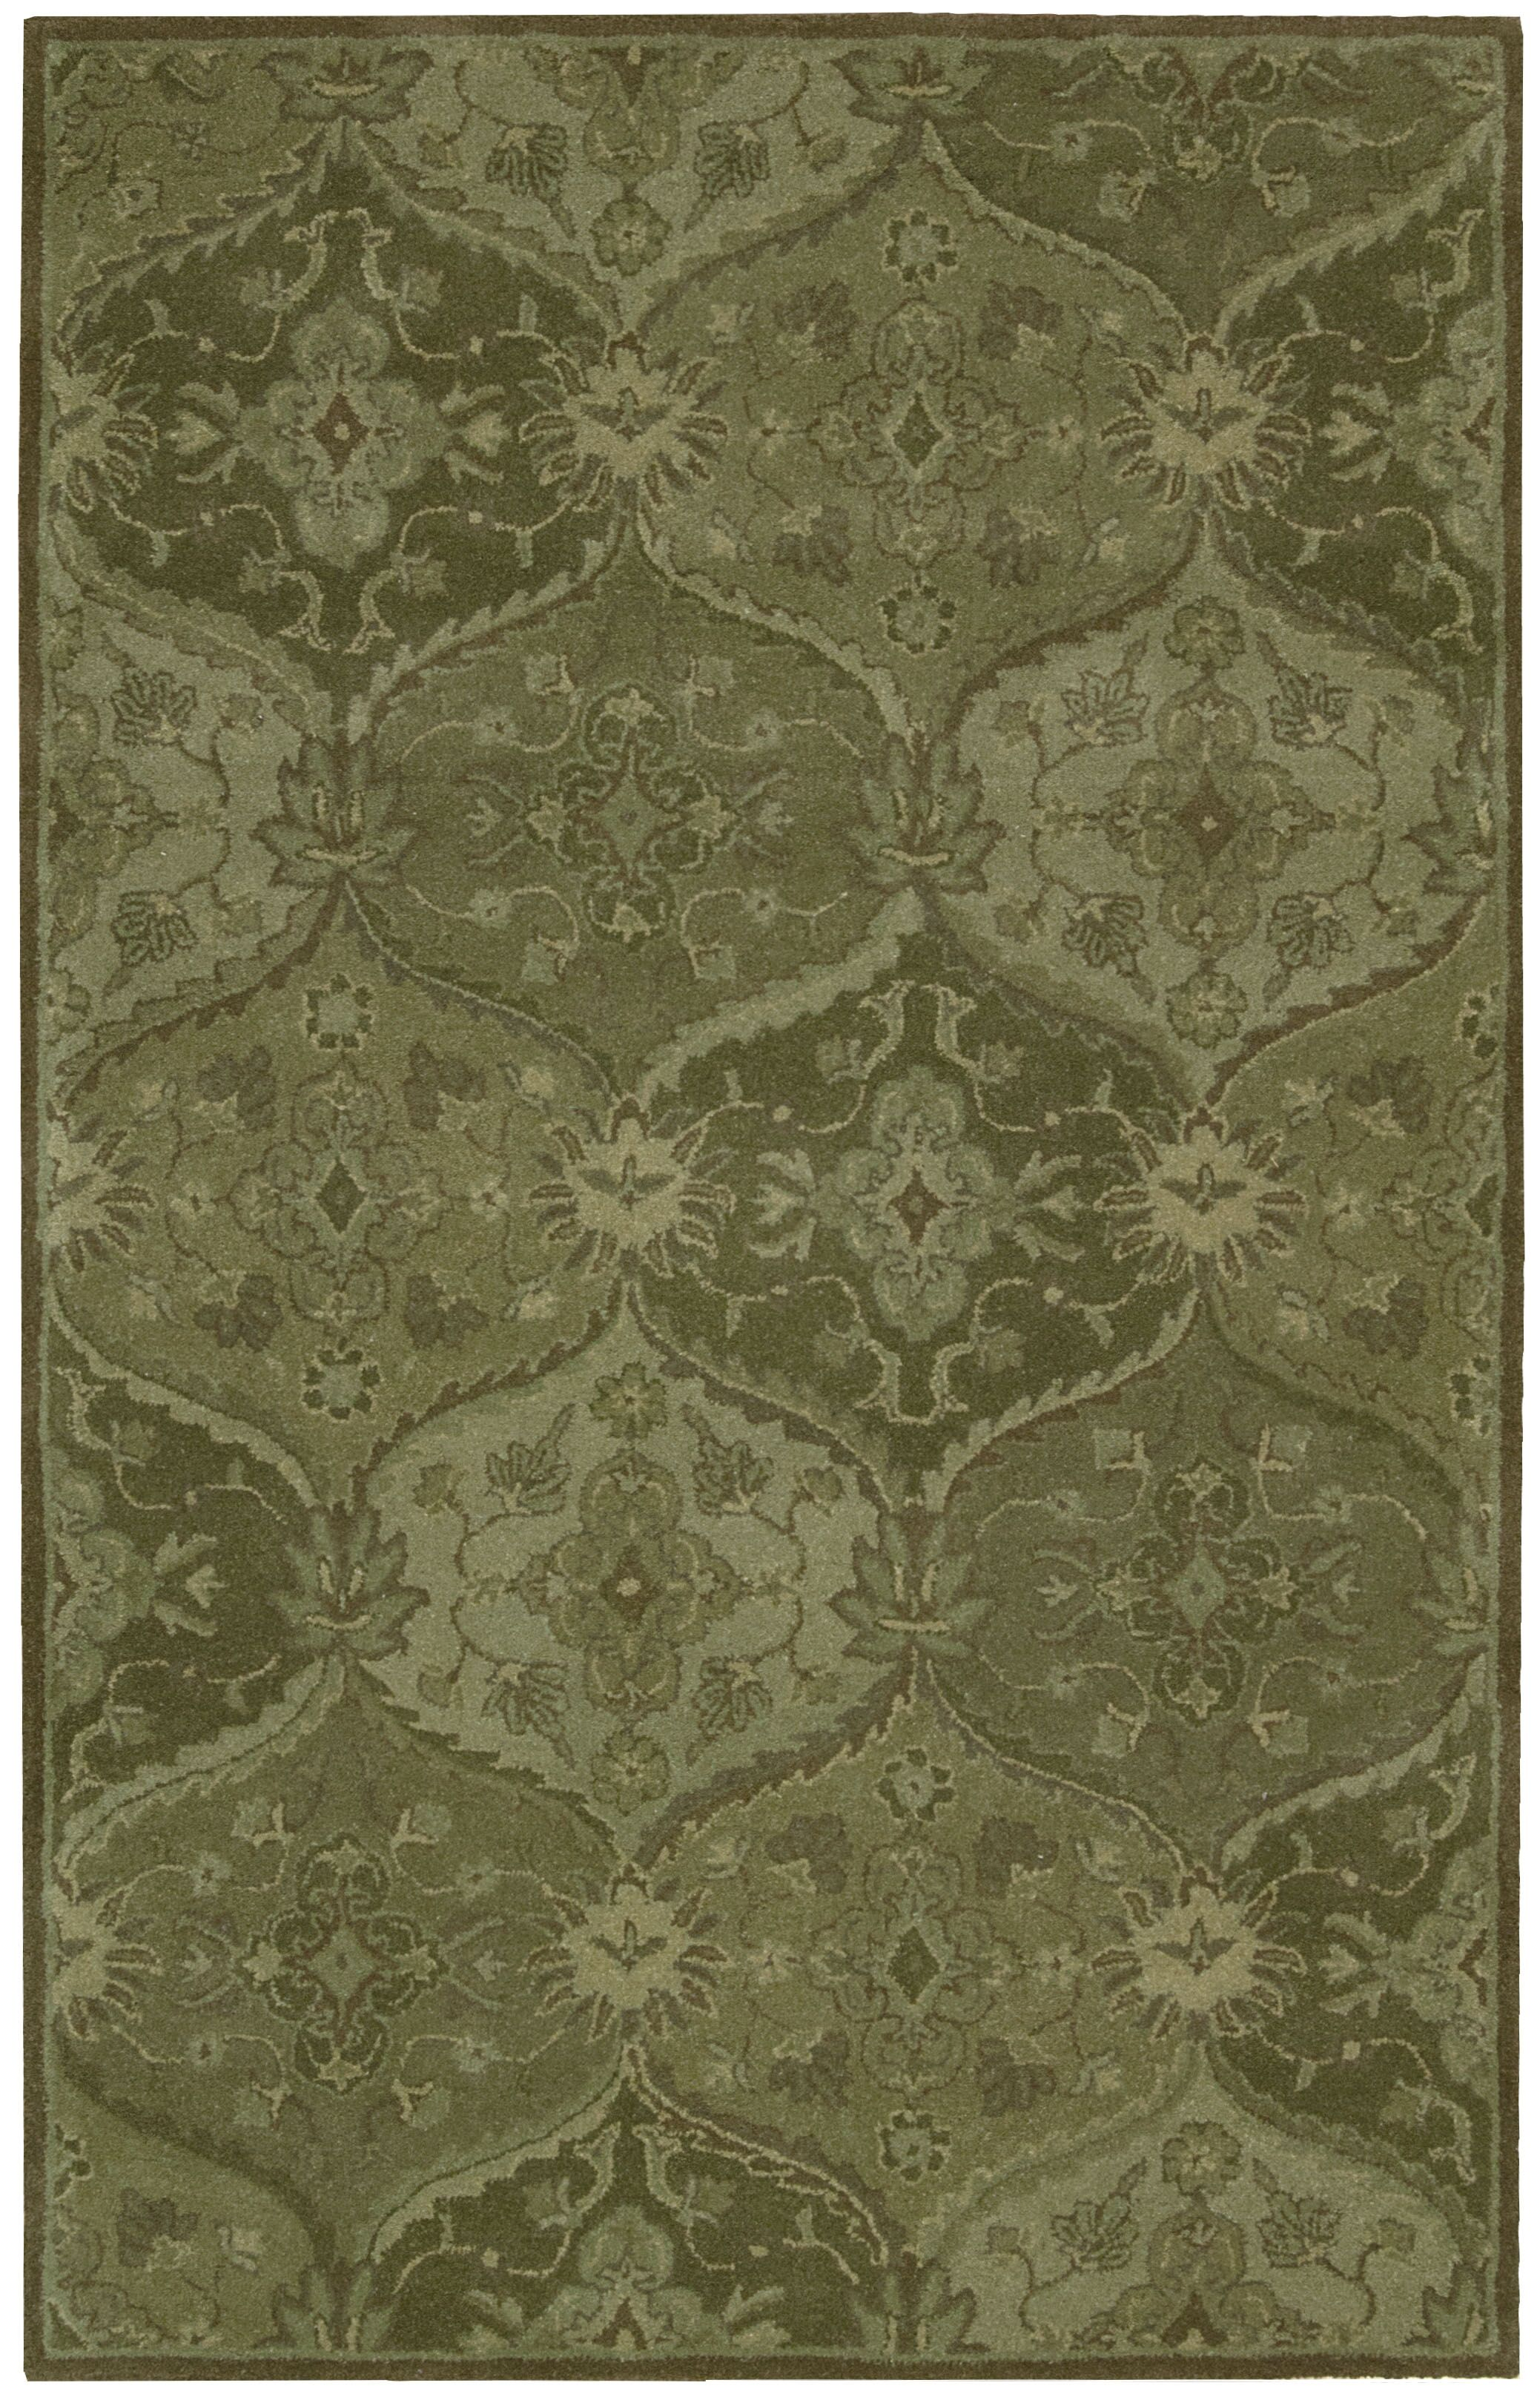 Barrick Hand-Tufted Green Area Rug Rug Size: Rectangle 3'6